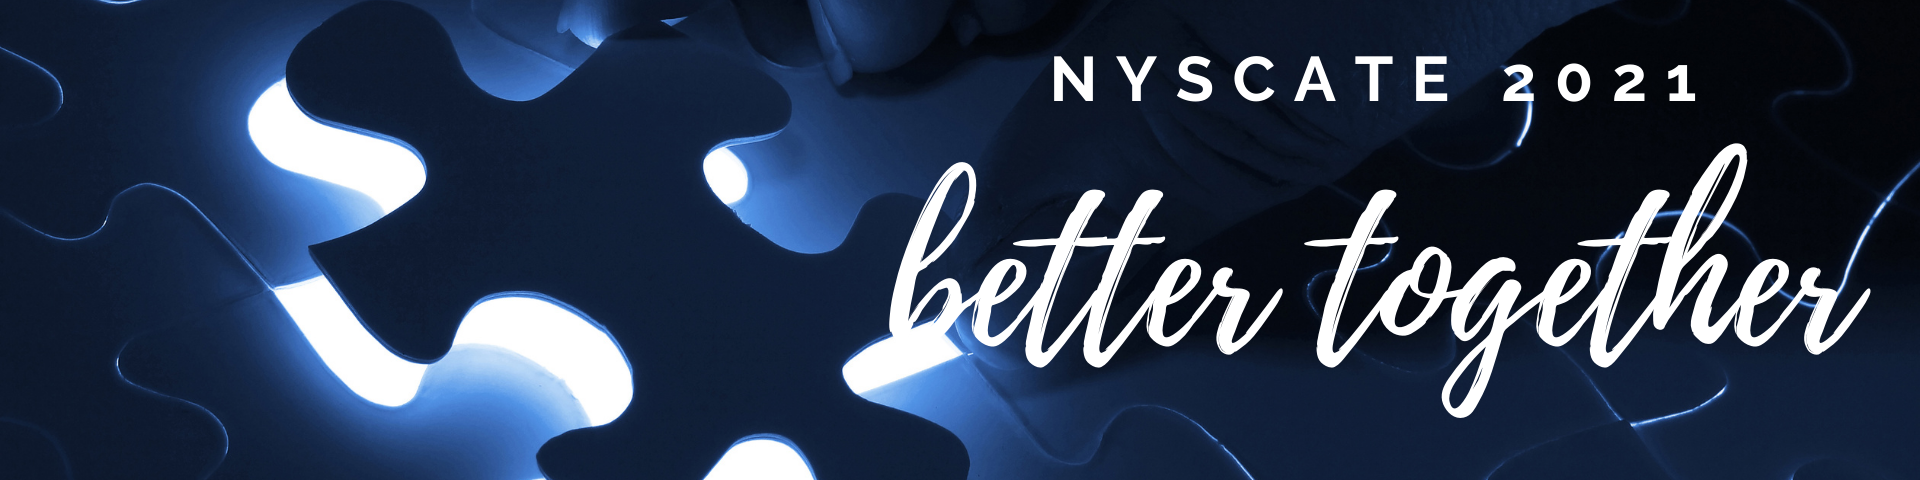 NYSCATE banner